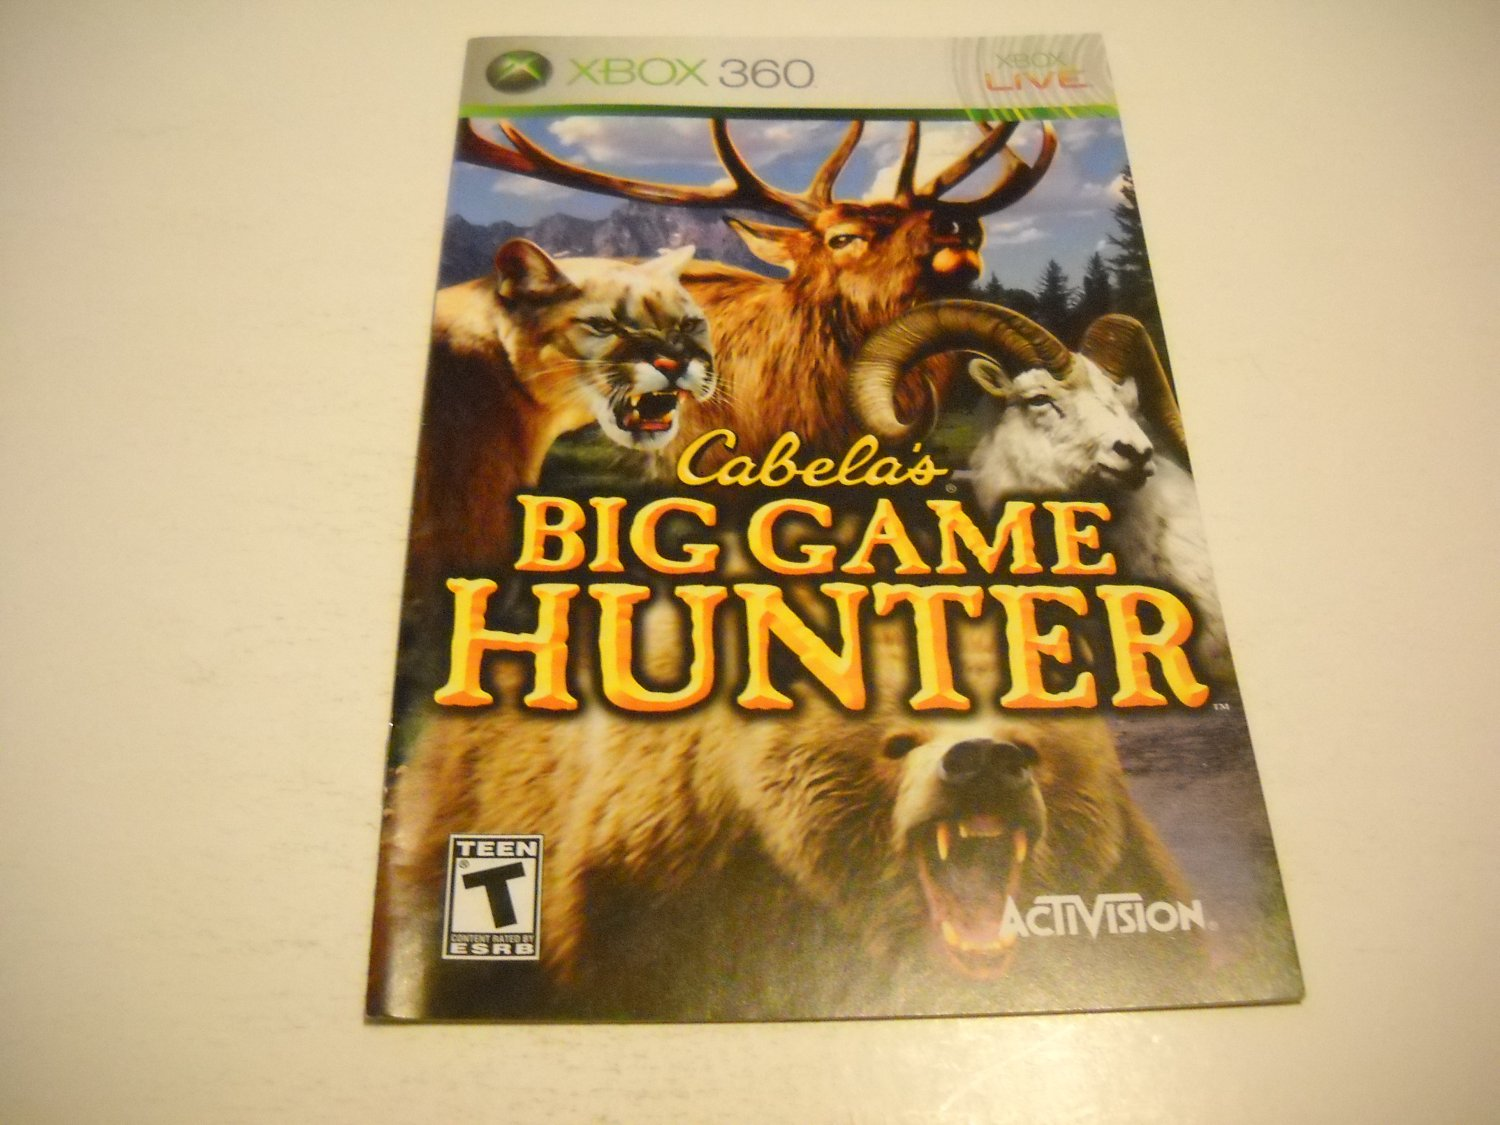 Manual ONLY ~  for Cabelas Big Game Hunter   - Xbox 360 Instruction Booklet